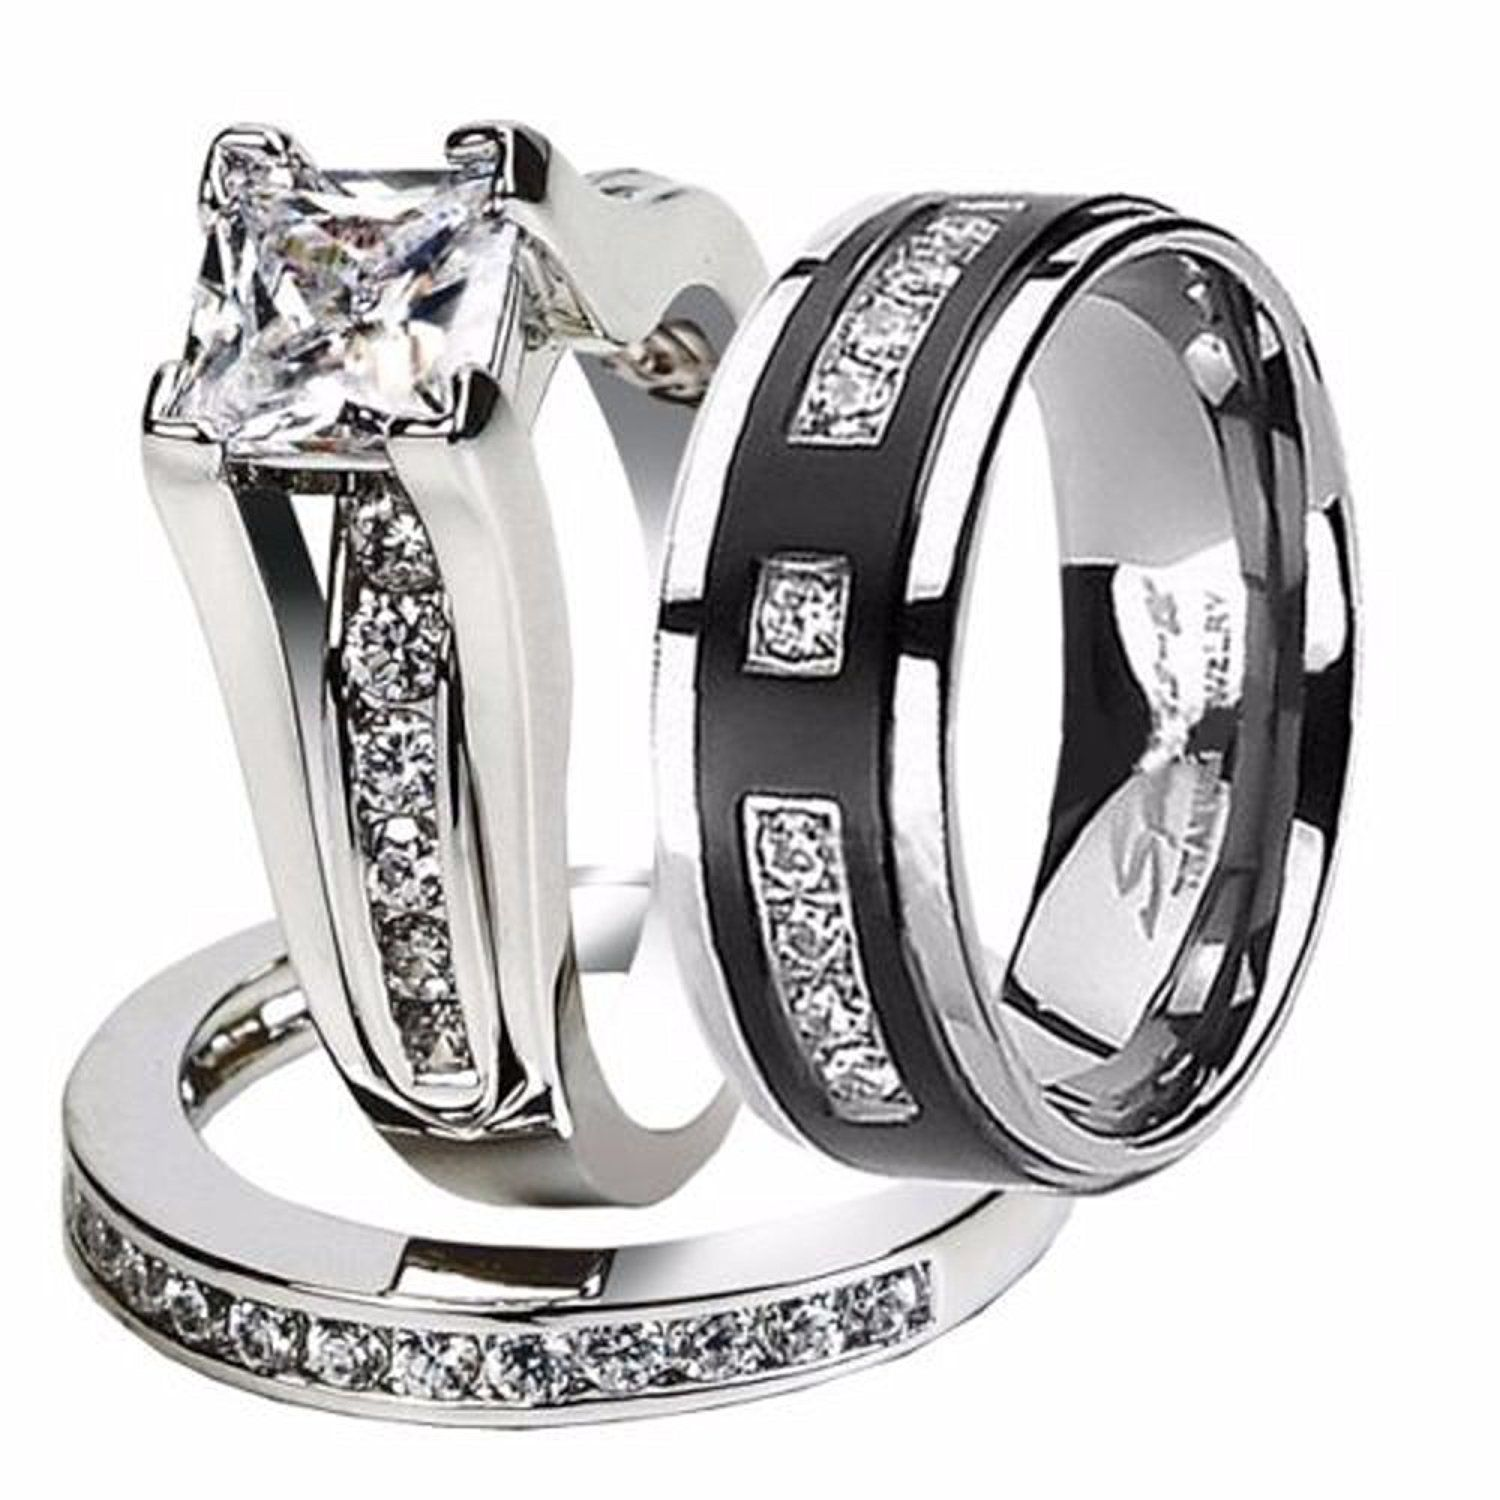 Hers And His Stainless Steel Princess Wedding Ring Set Anium Band Tried